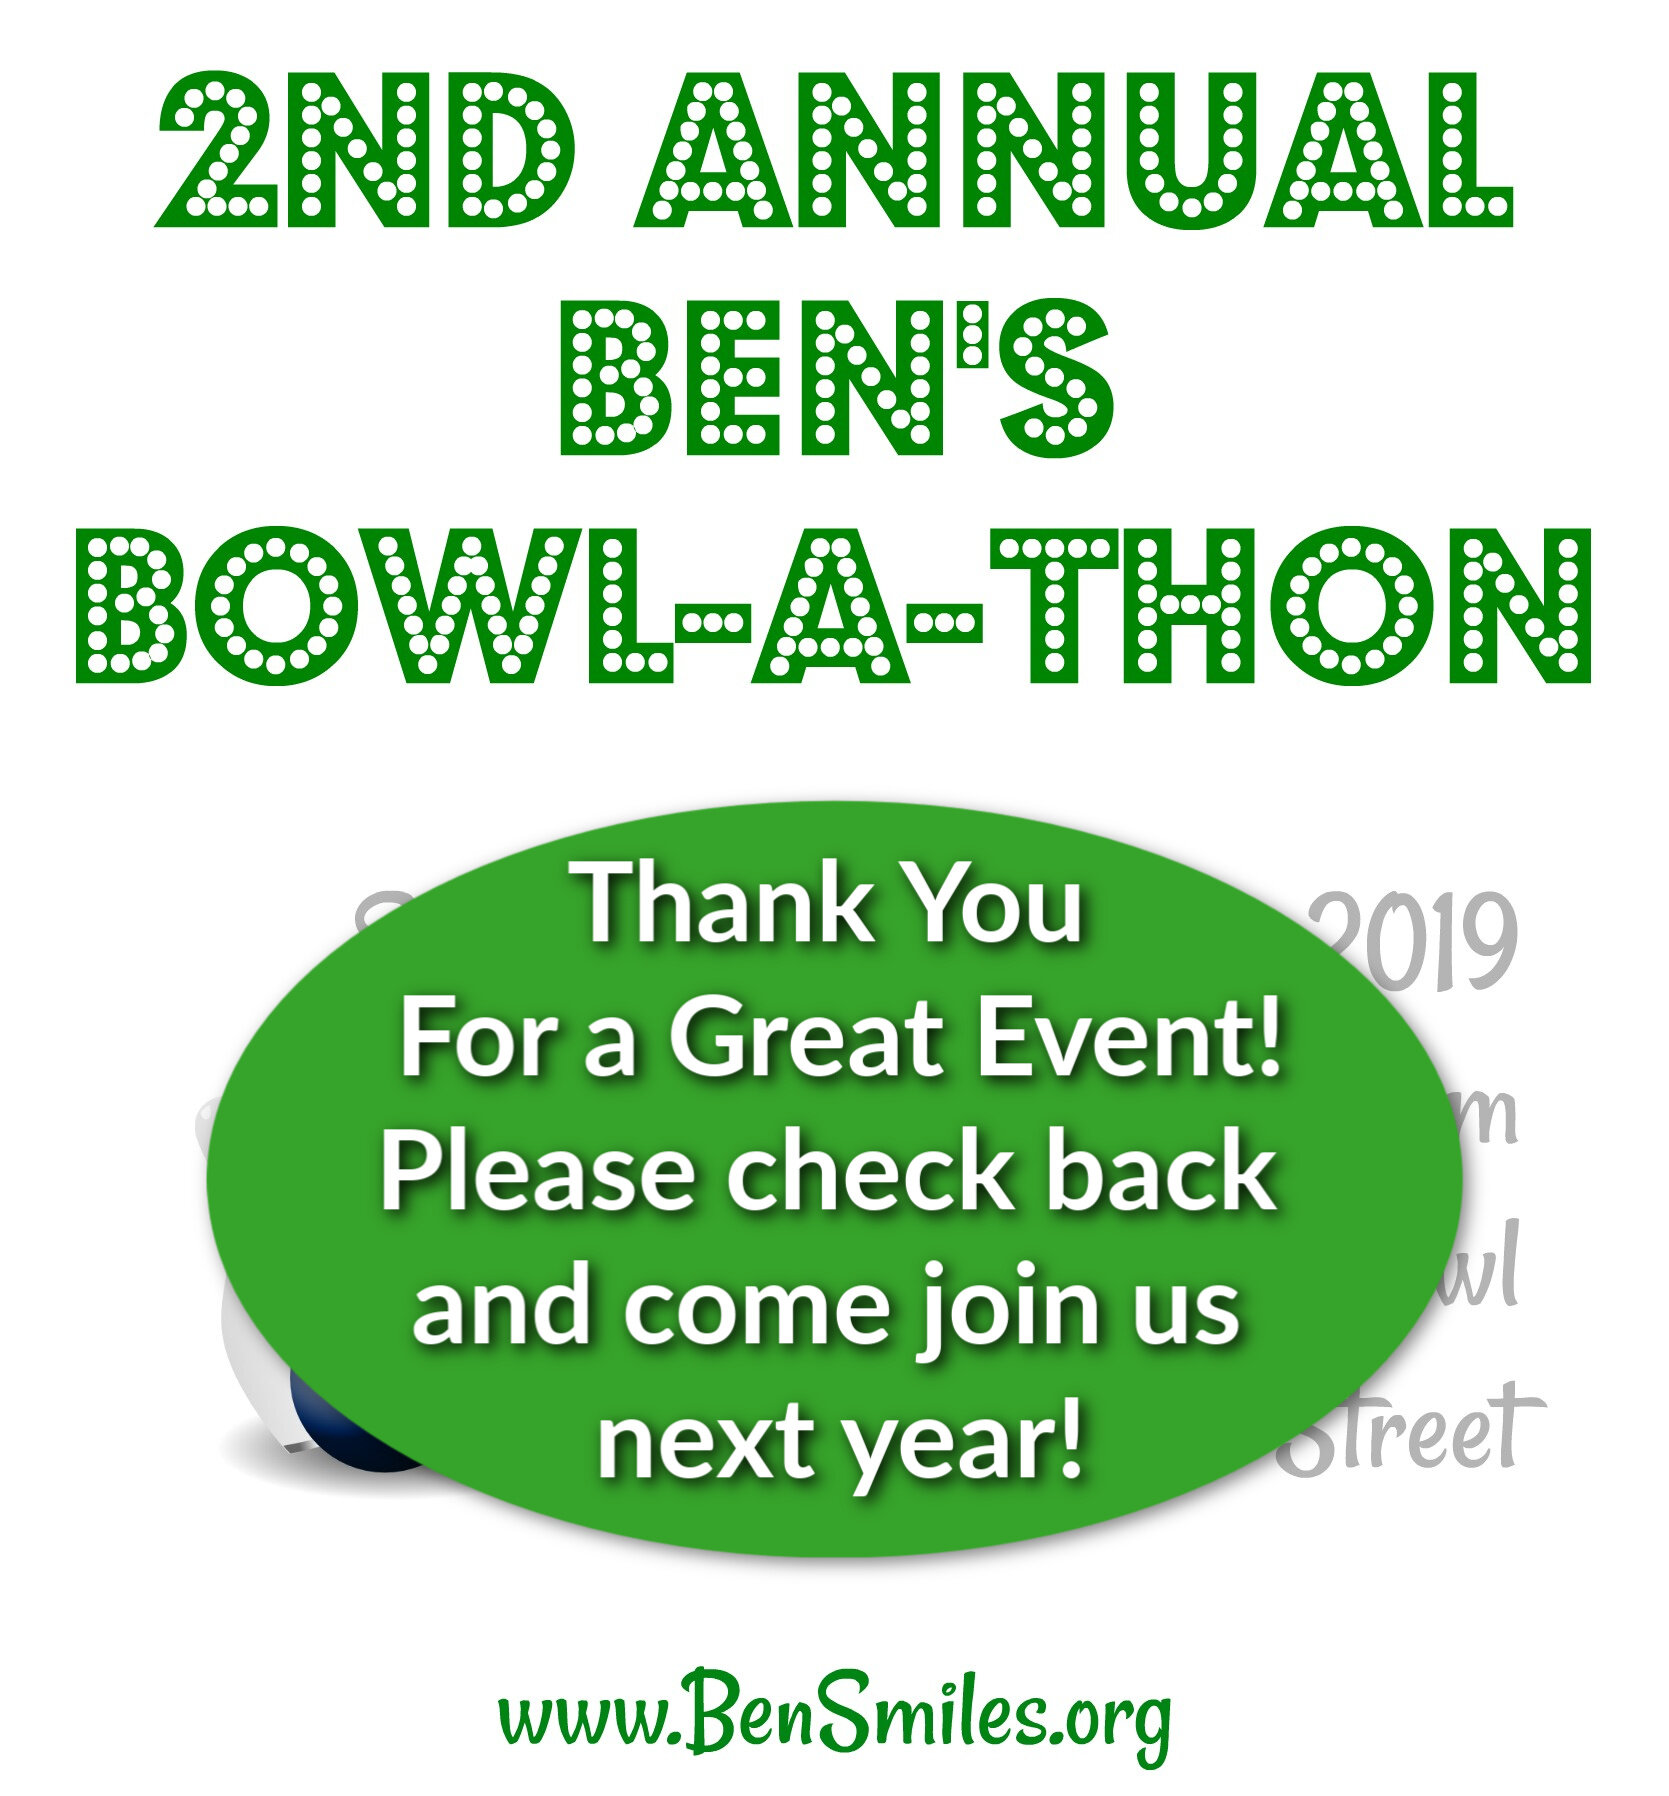 Ben's 2nd Annual Bowl-A-Thon - PAST:  Sunday, September 8, 2019Update: A HUGE THANK YOU to everyone who donated packages and prizes, attended and supported! We appreciate it so much. We ended up raising $4,000 to enable us to provide switch-adapted toys, switches and other devices to kids with motor delays or diagnoses. We hope you can join us next year! For information on how to become involved, email Elizabeth at Info@bensmiles.org. Thank you to all of our sponsors and donors! Take a look at last year's bowl-a-thon video here.